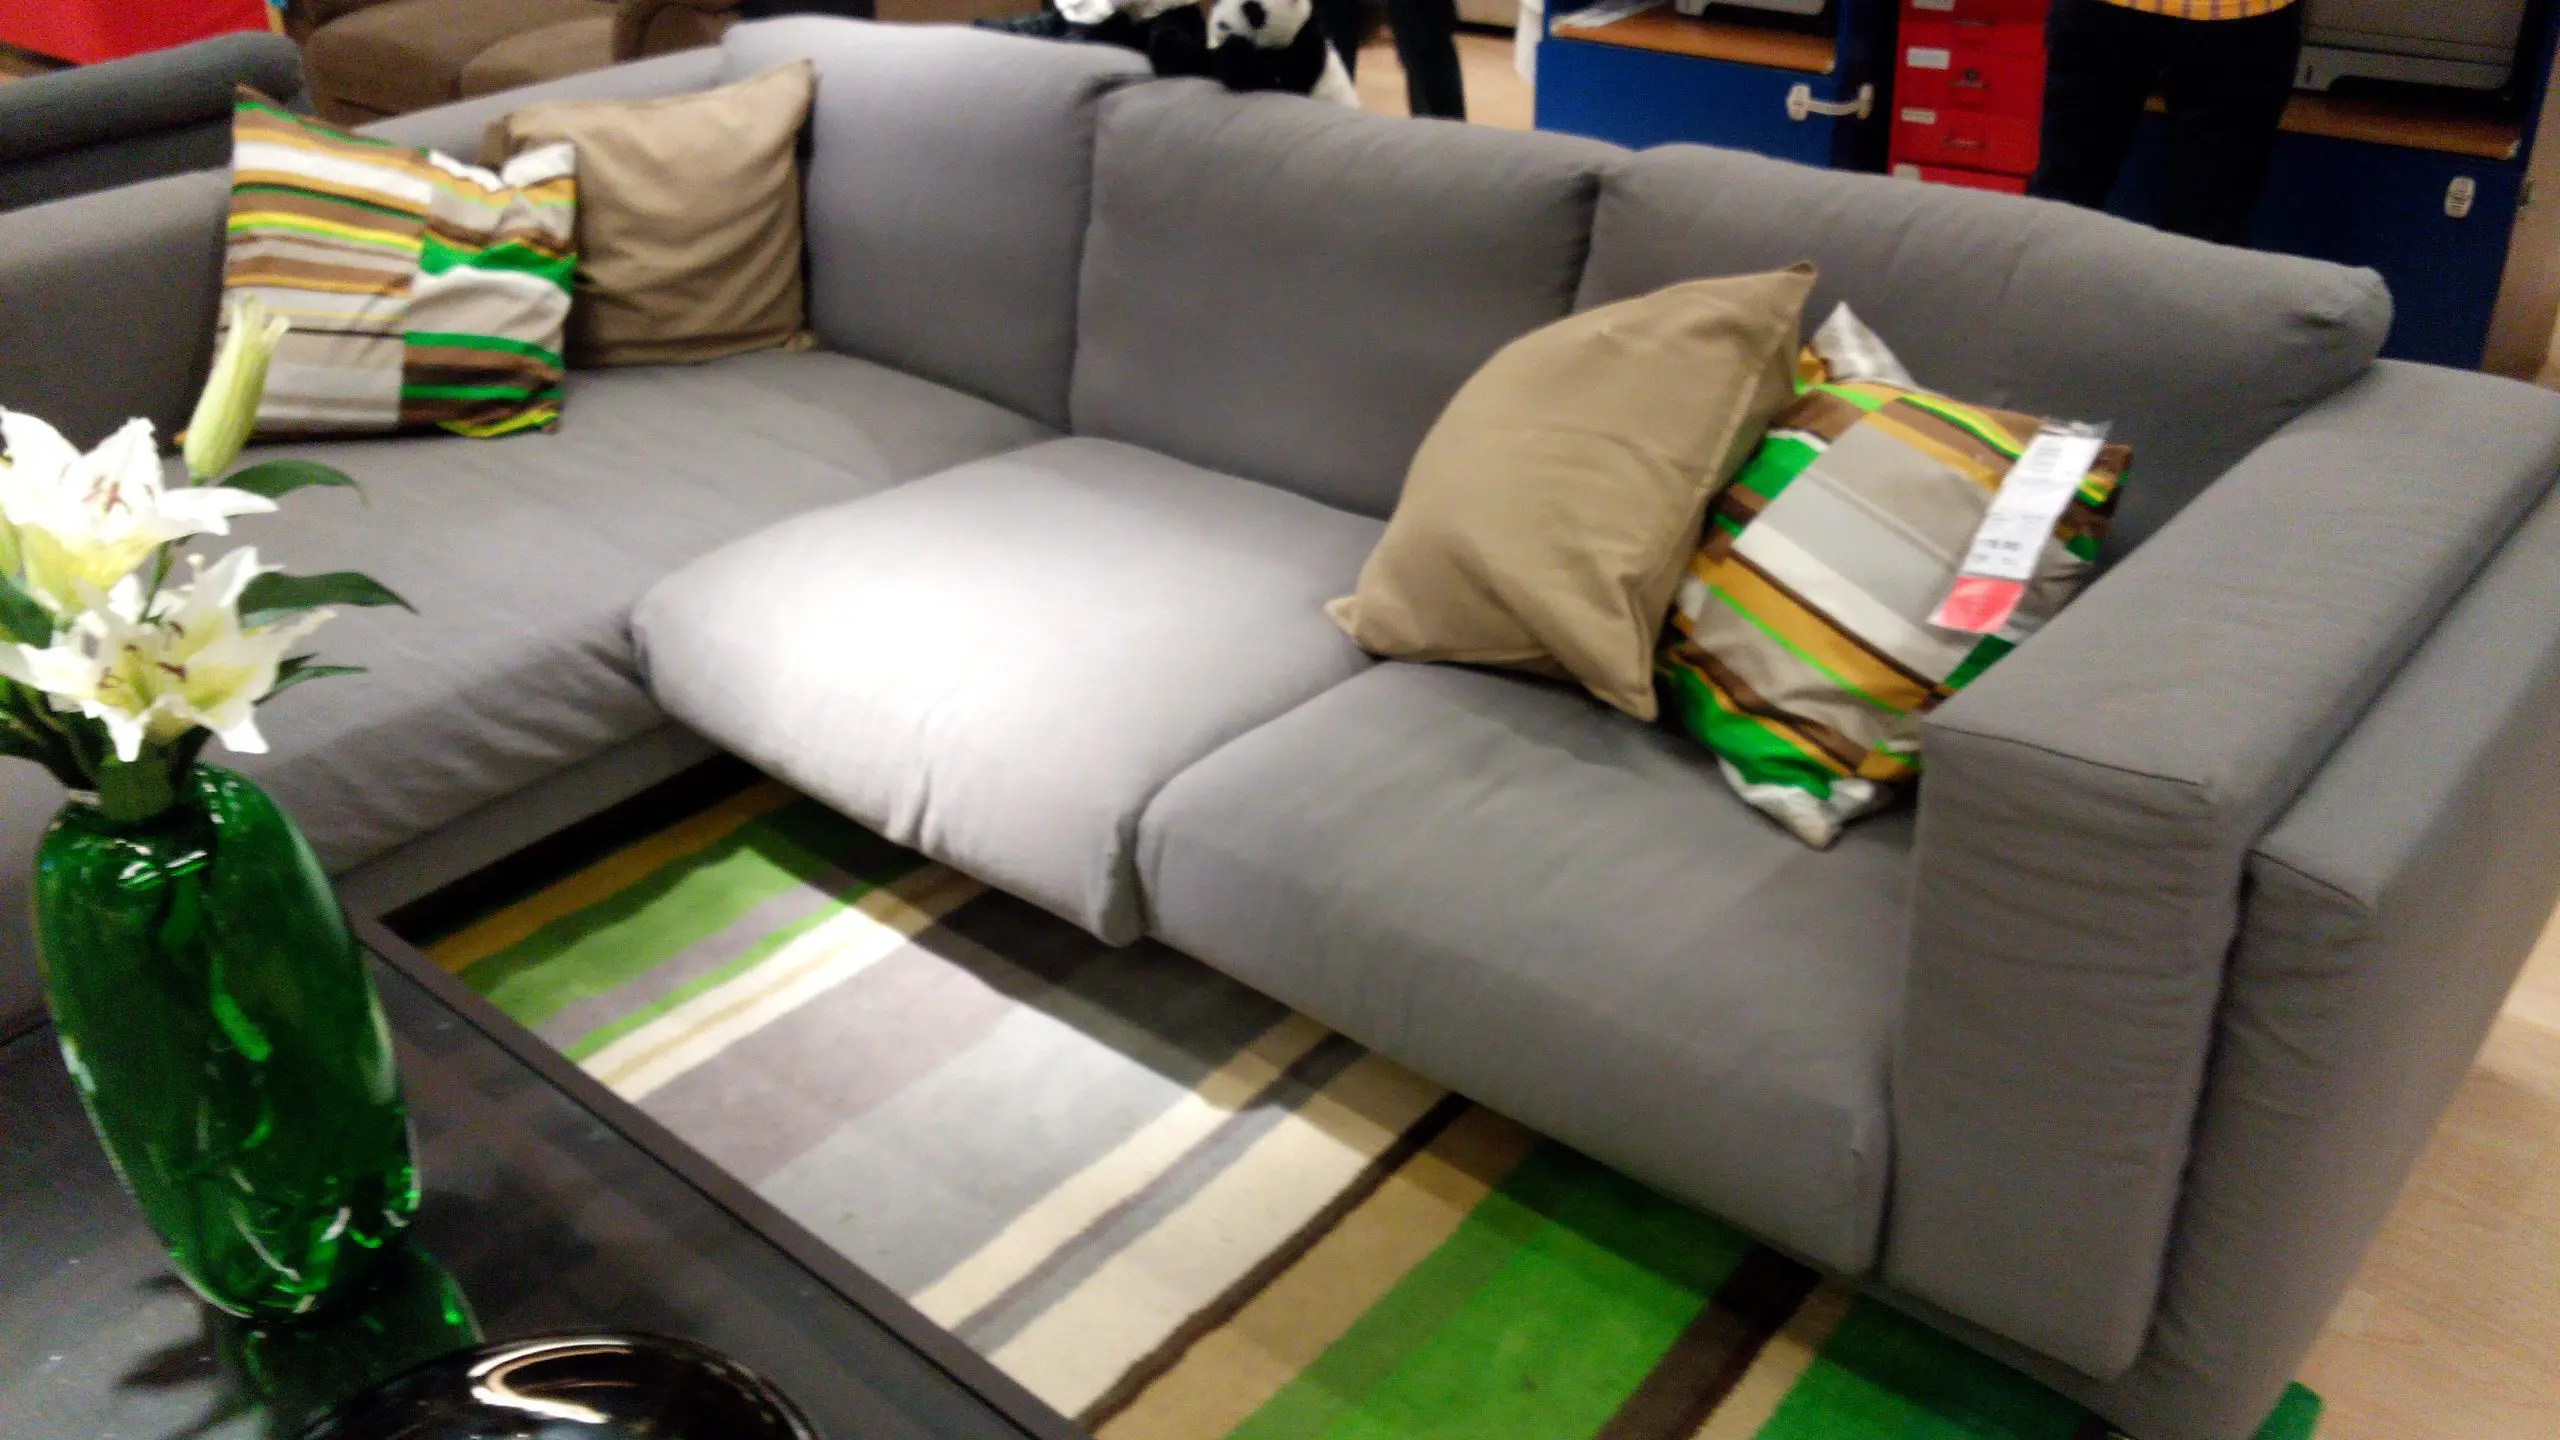 Couches In Ikea Ikea Nockeby Sofa Review New Ikea Couch Series Mid 2014